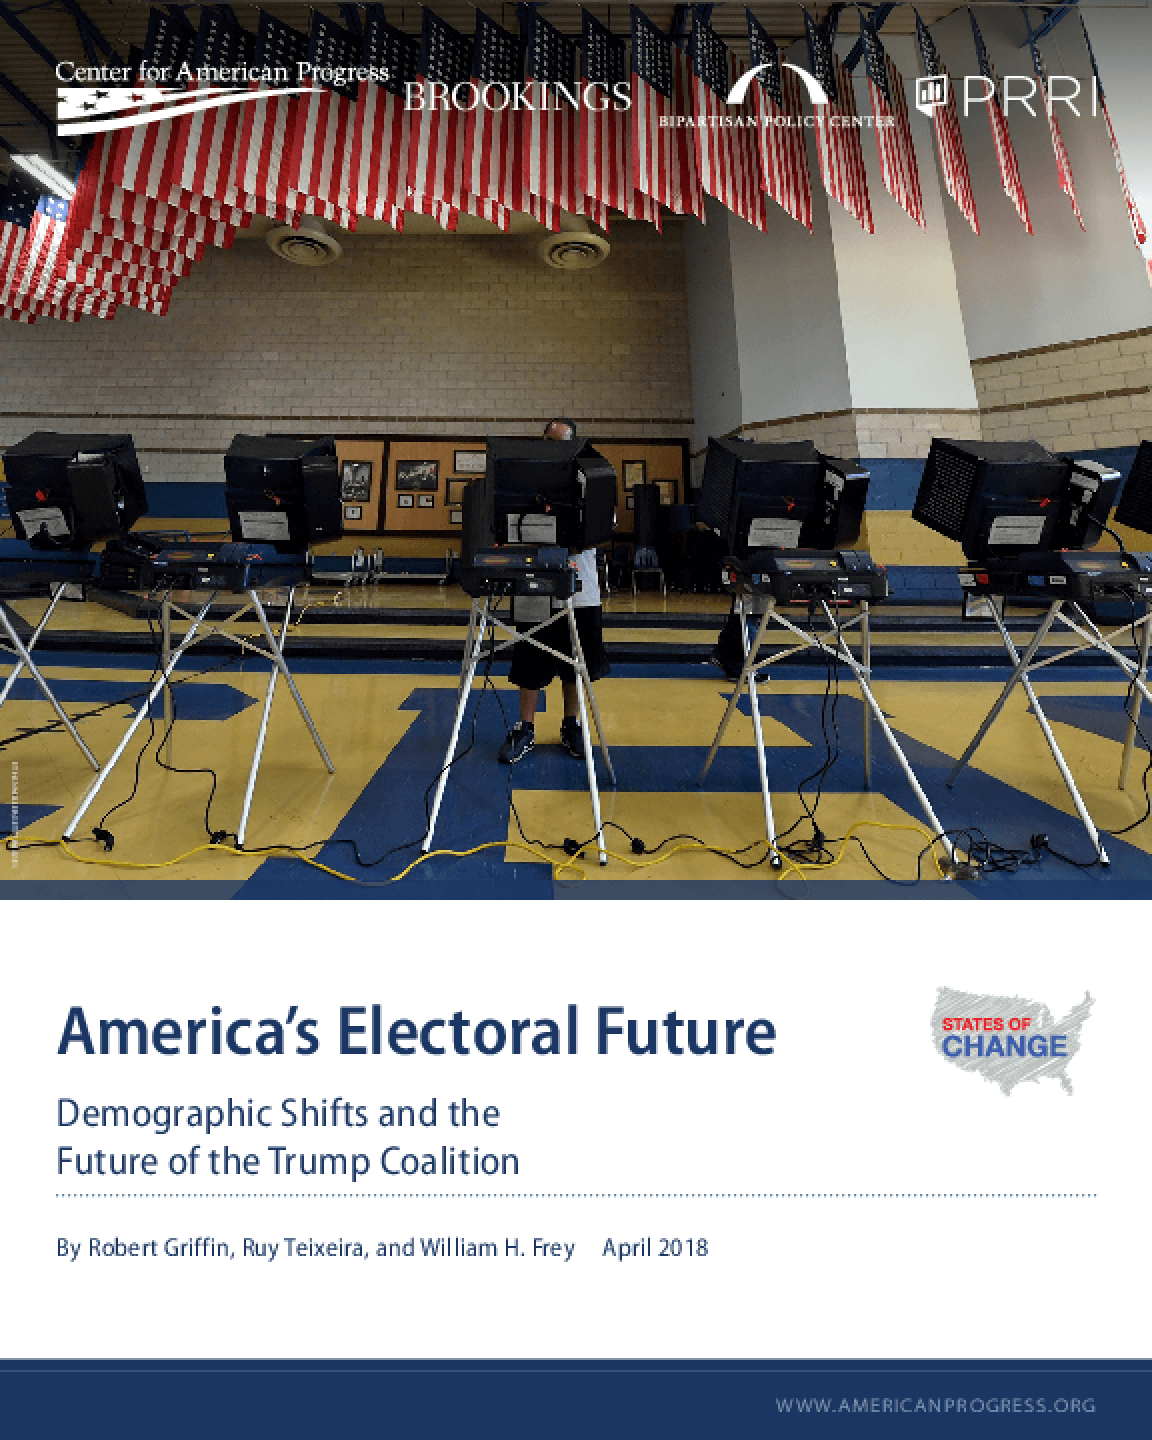 America's Electoral Future: Demographic Shifts and the Future of the Trump Coalition